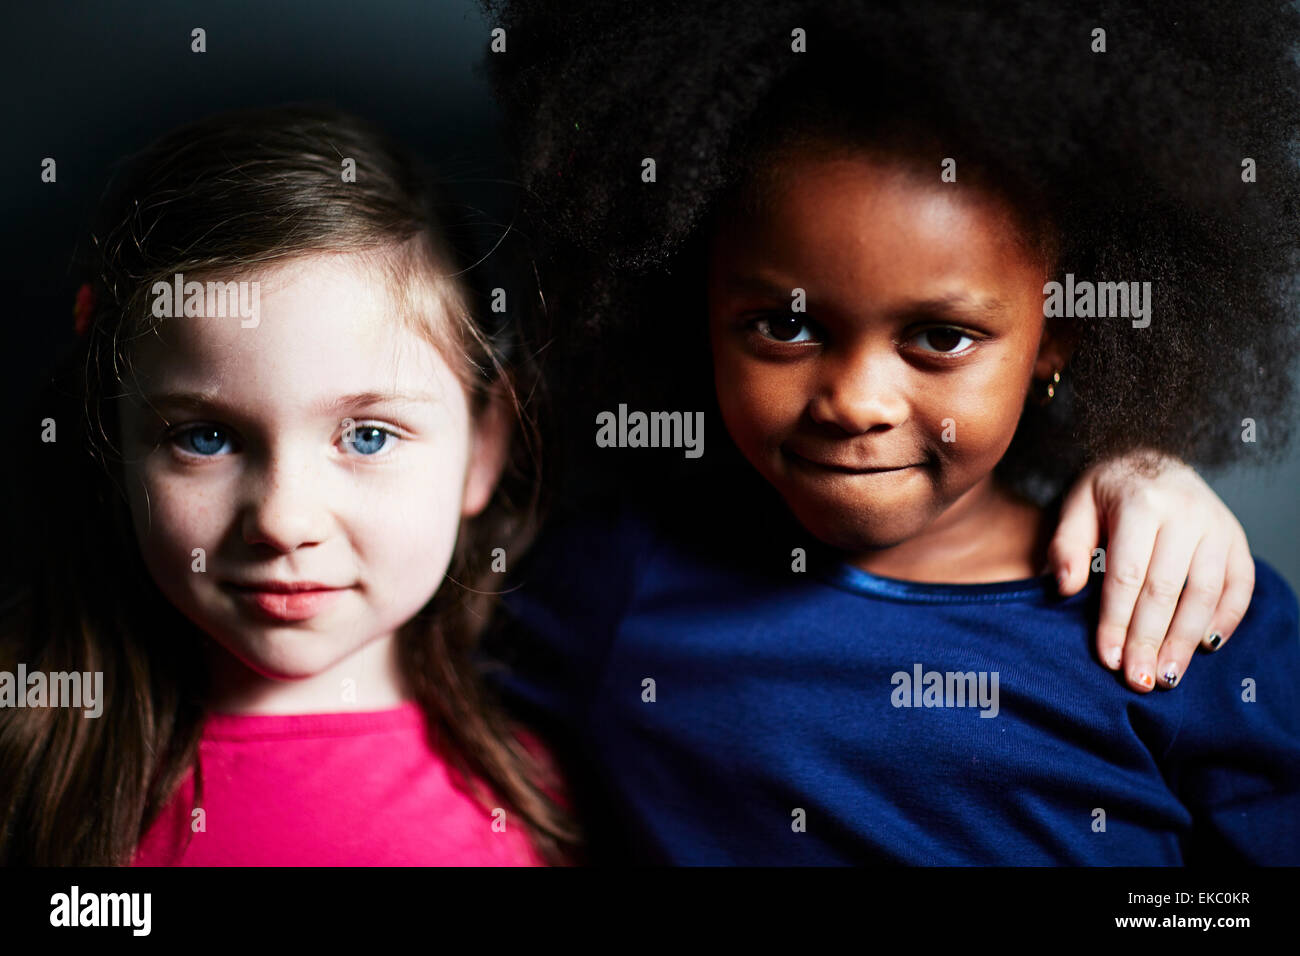 Best friends with arm around each other - Stock Image